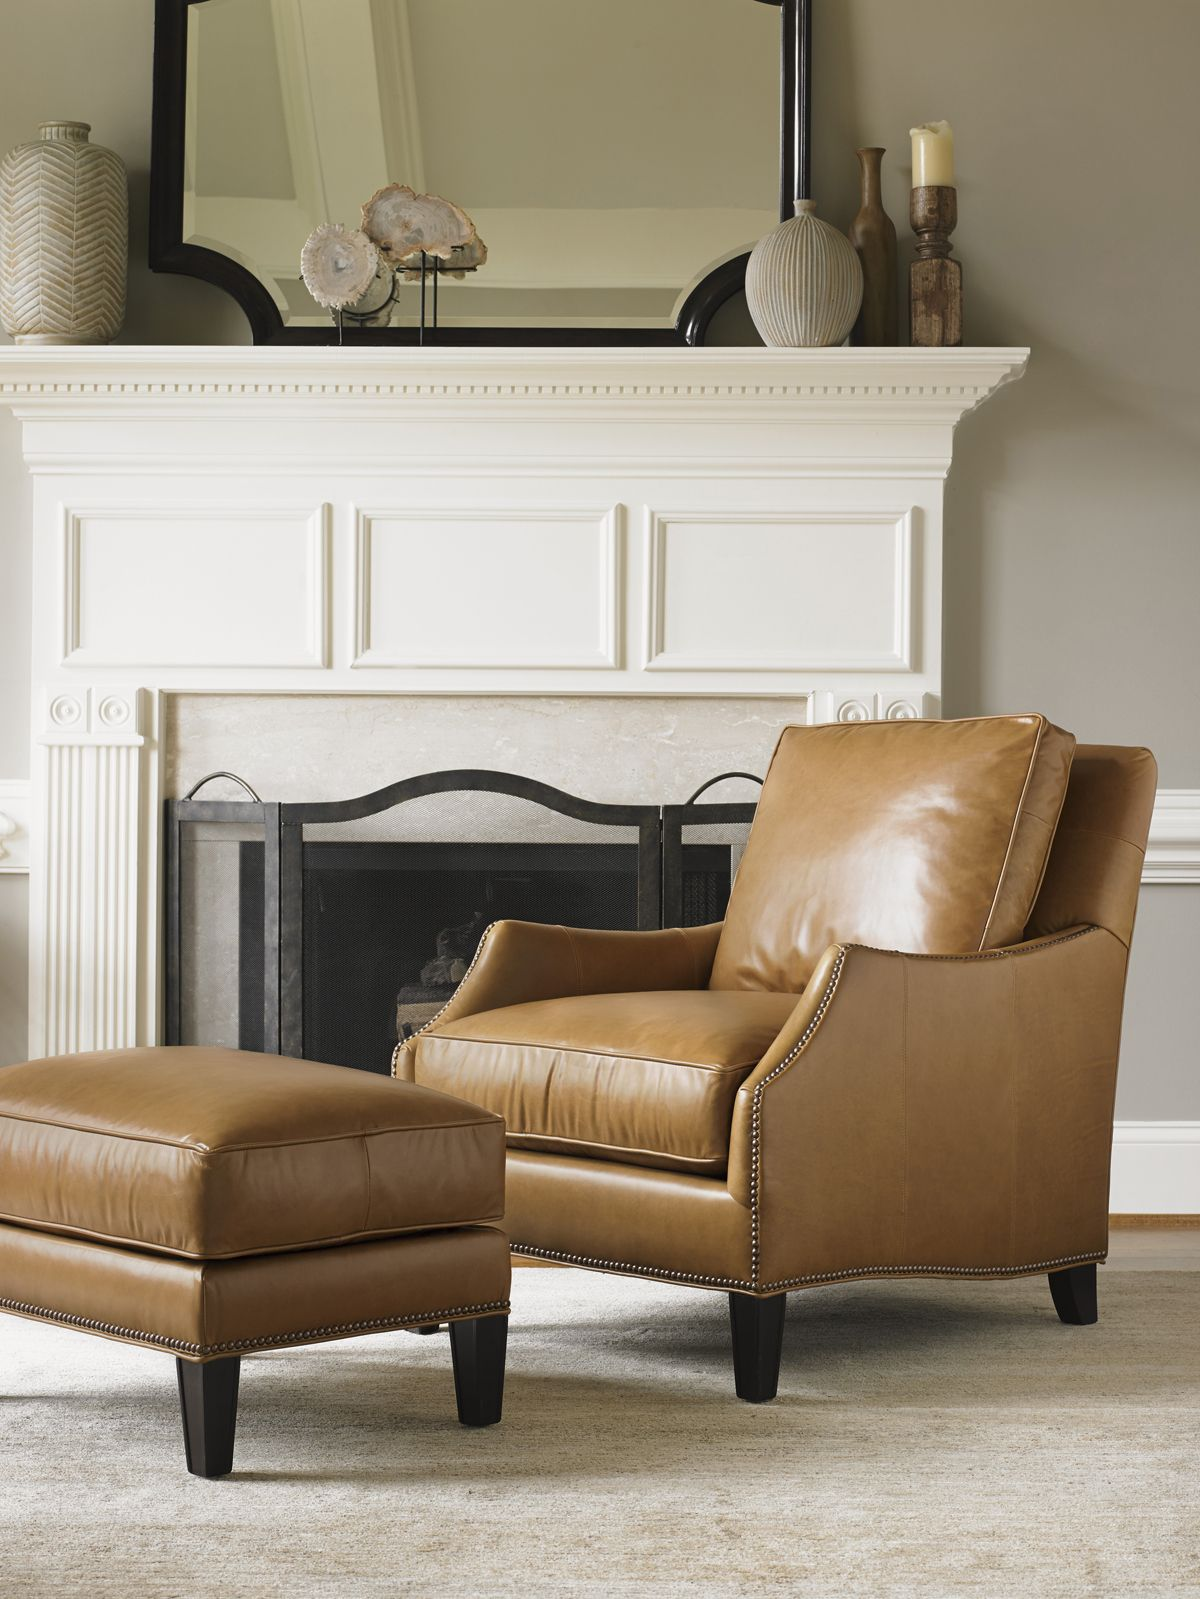 Charming Butterscotch Leather Chair And Ottoman From Lexington Furniture.  #LeatherSeating #LHBDesign